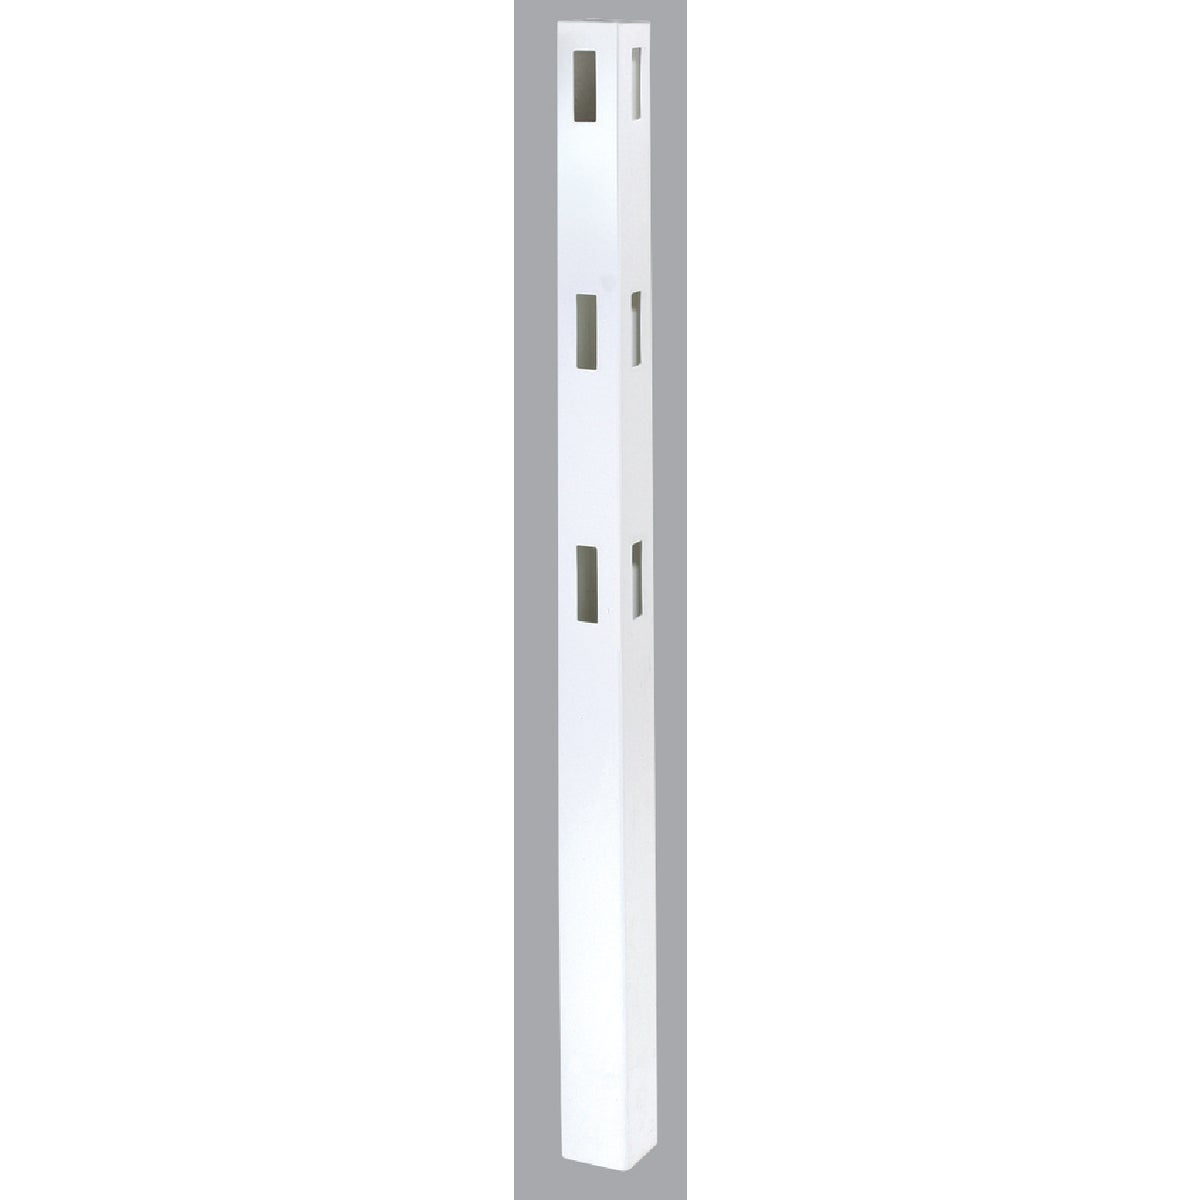 Genova Building Products 5X84 WHT 3-RAIL CRN POST FW653C